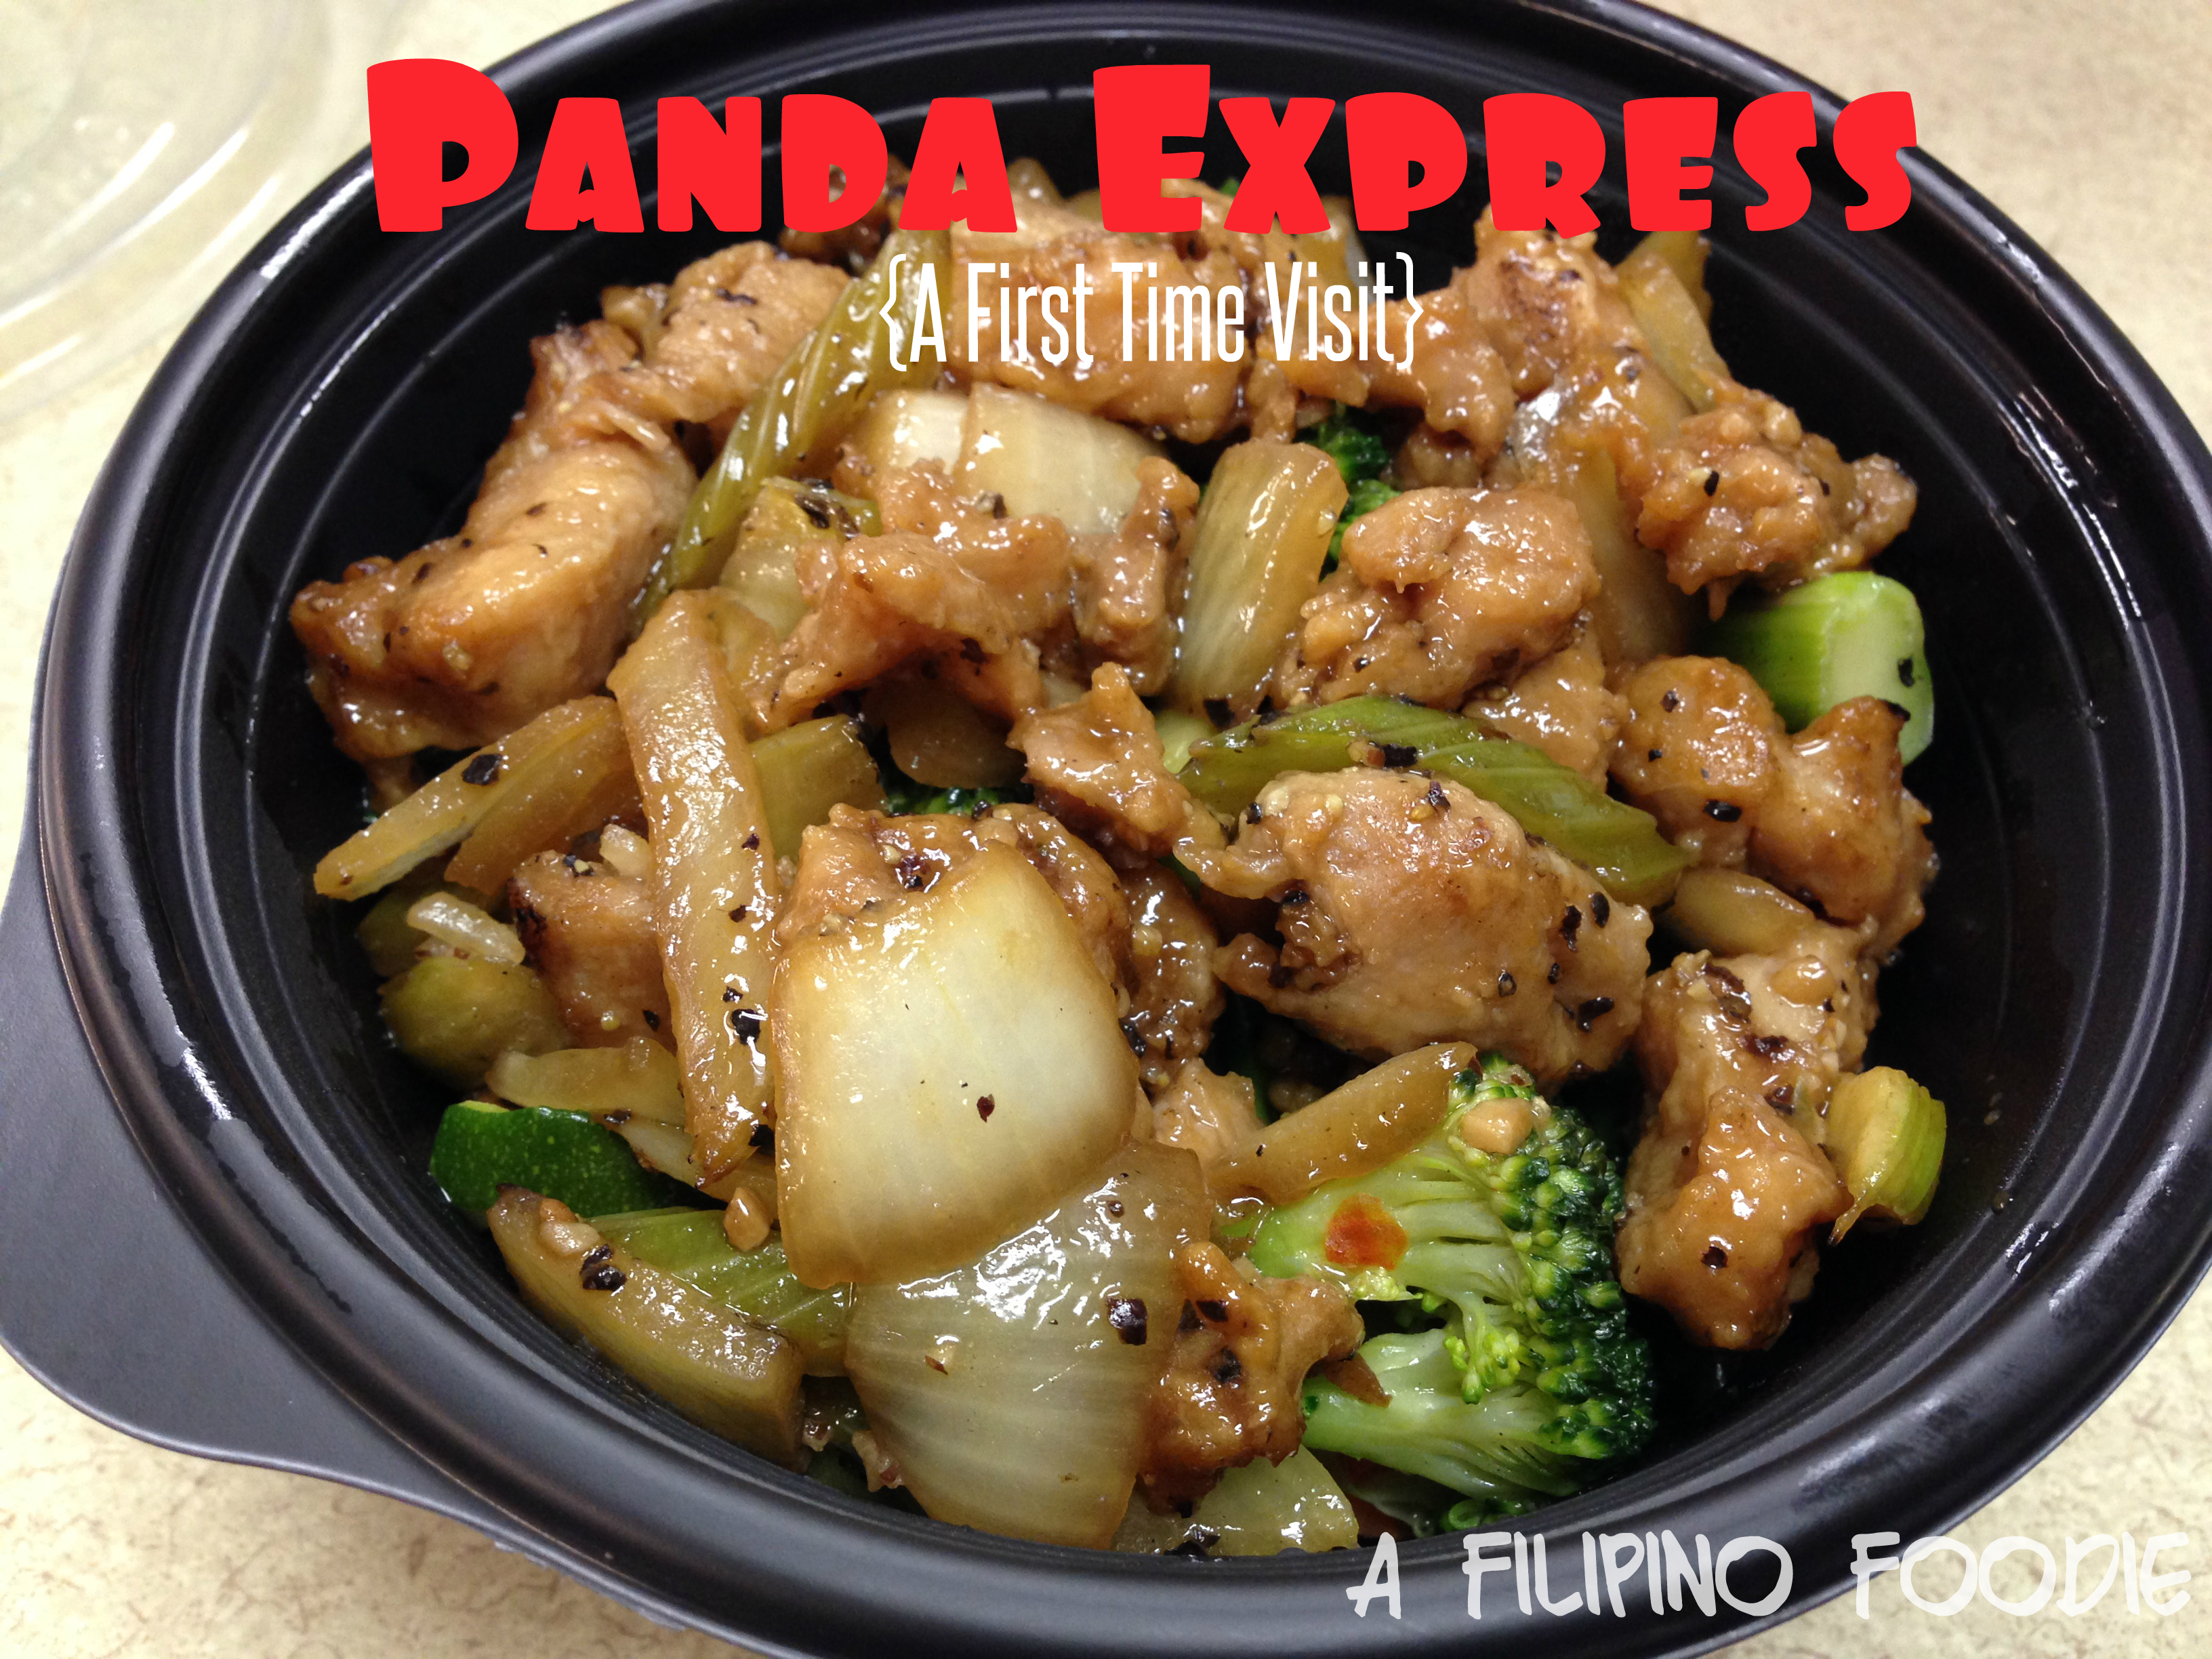 Panda Express Nutrition A Filipino Foodie